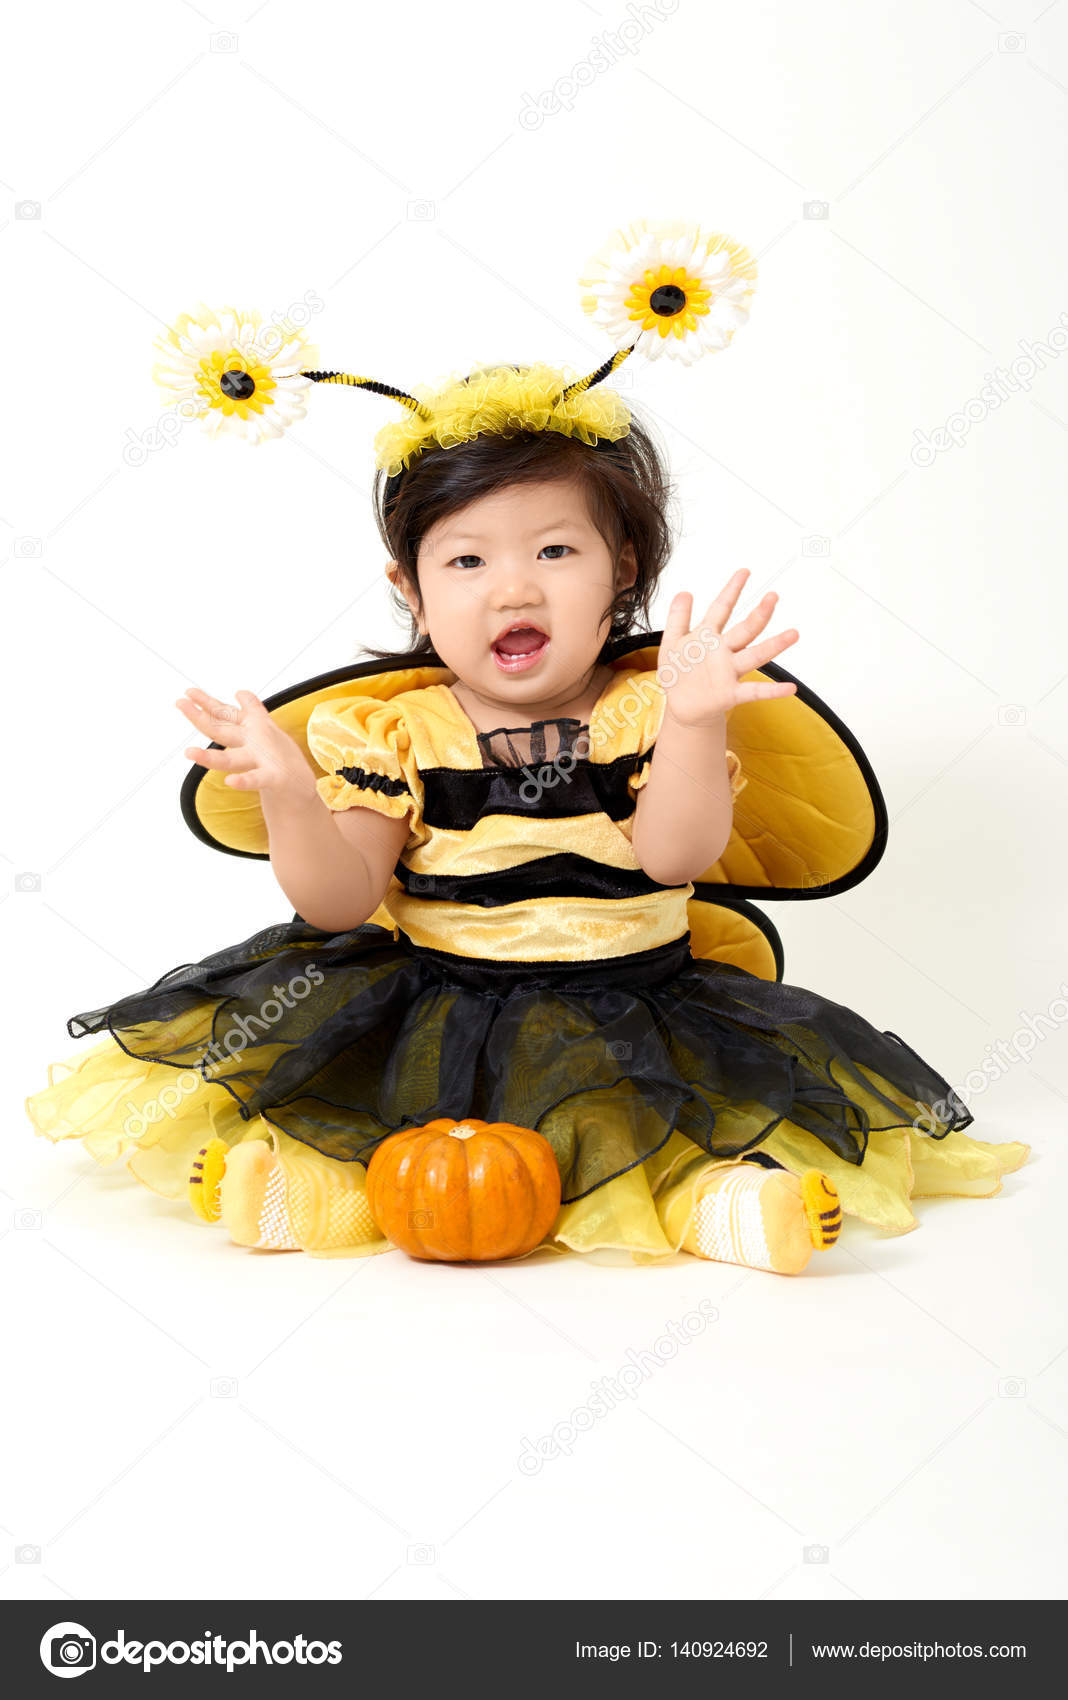 baby wearing bee costume is ready for halloween photo by hollanddoggmailcom